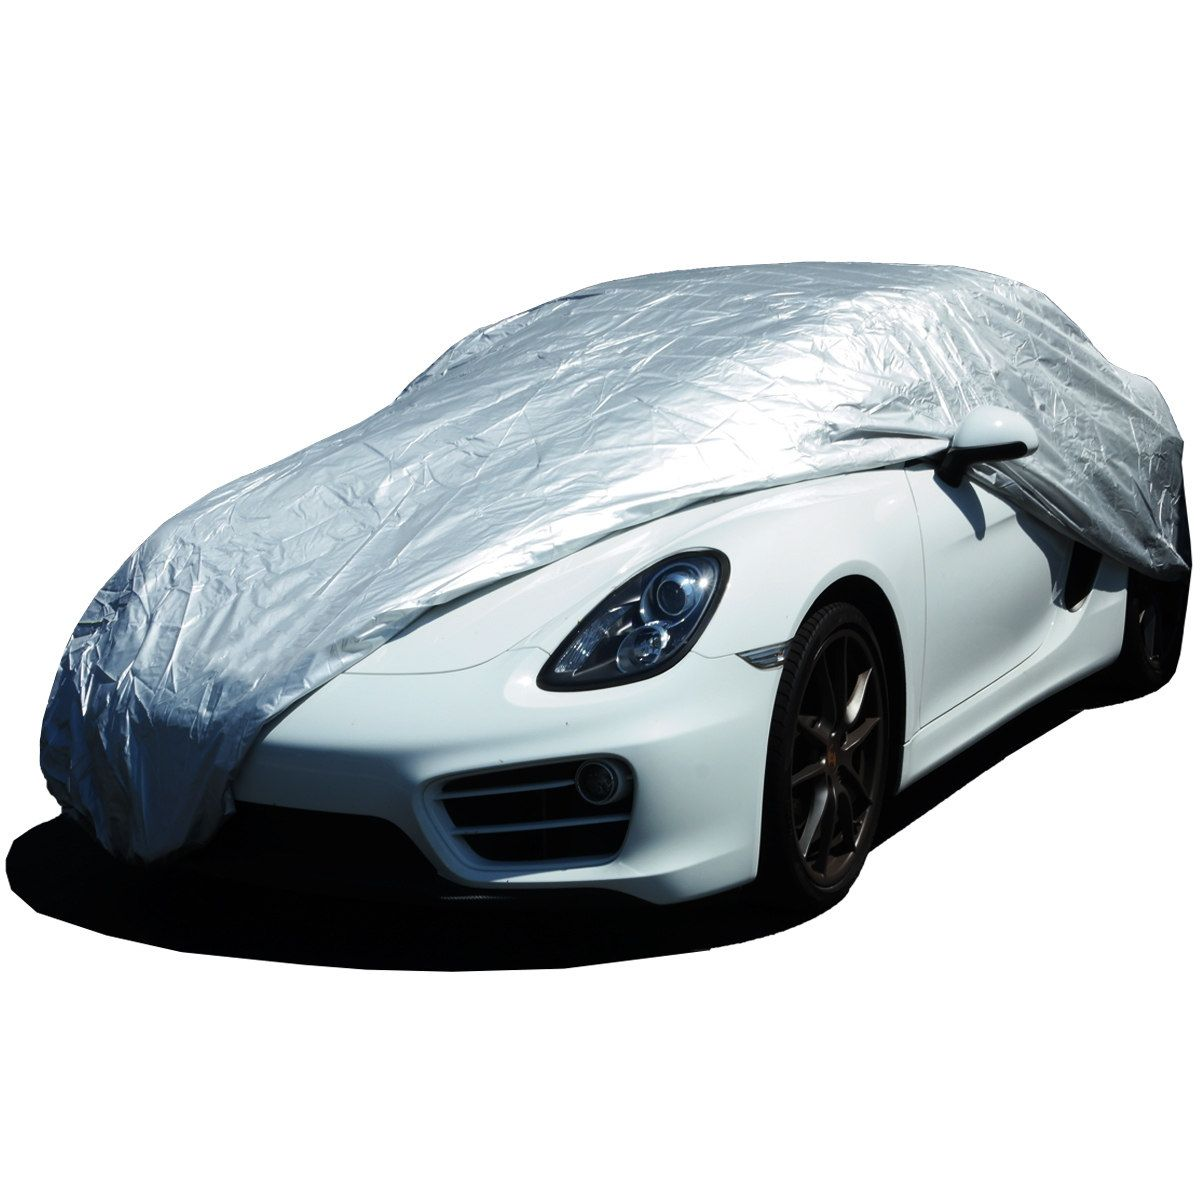 KM World Silver Premium Waterproof Car Cover Fits Audi A - Audi a5 car cover